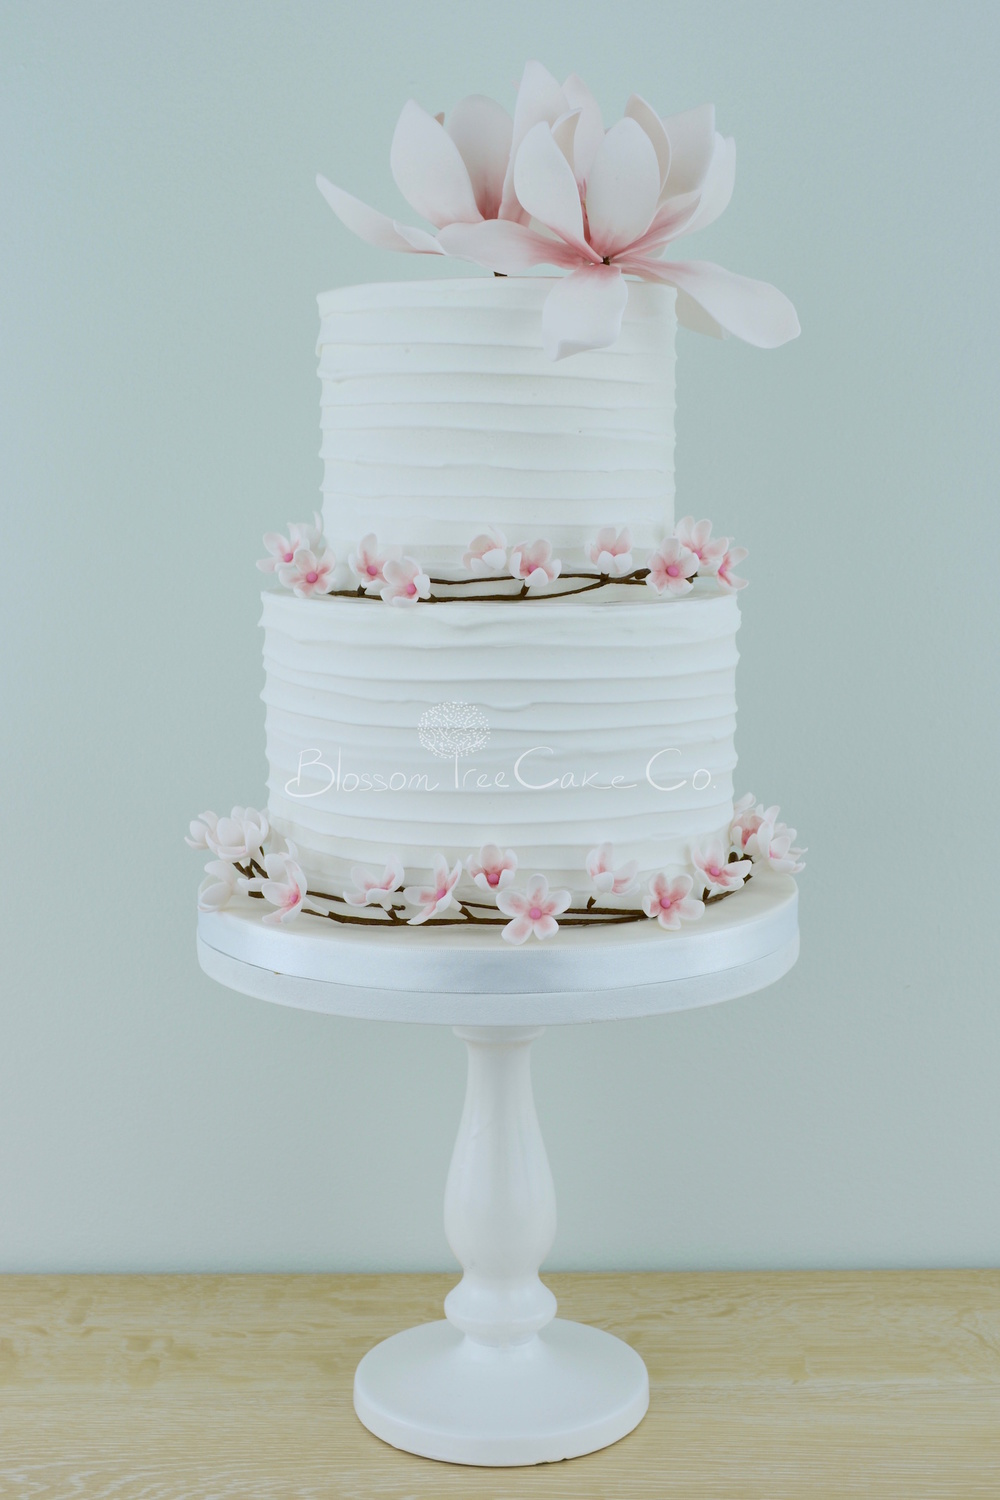 Cherry Blossom & Magnolias wedding cake by Blossom Tree Cake Company Harrogate North Yorkshire